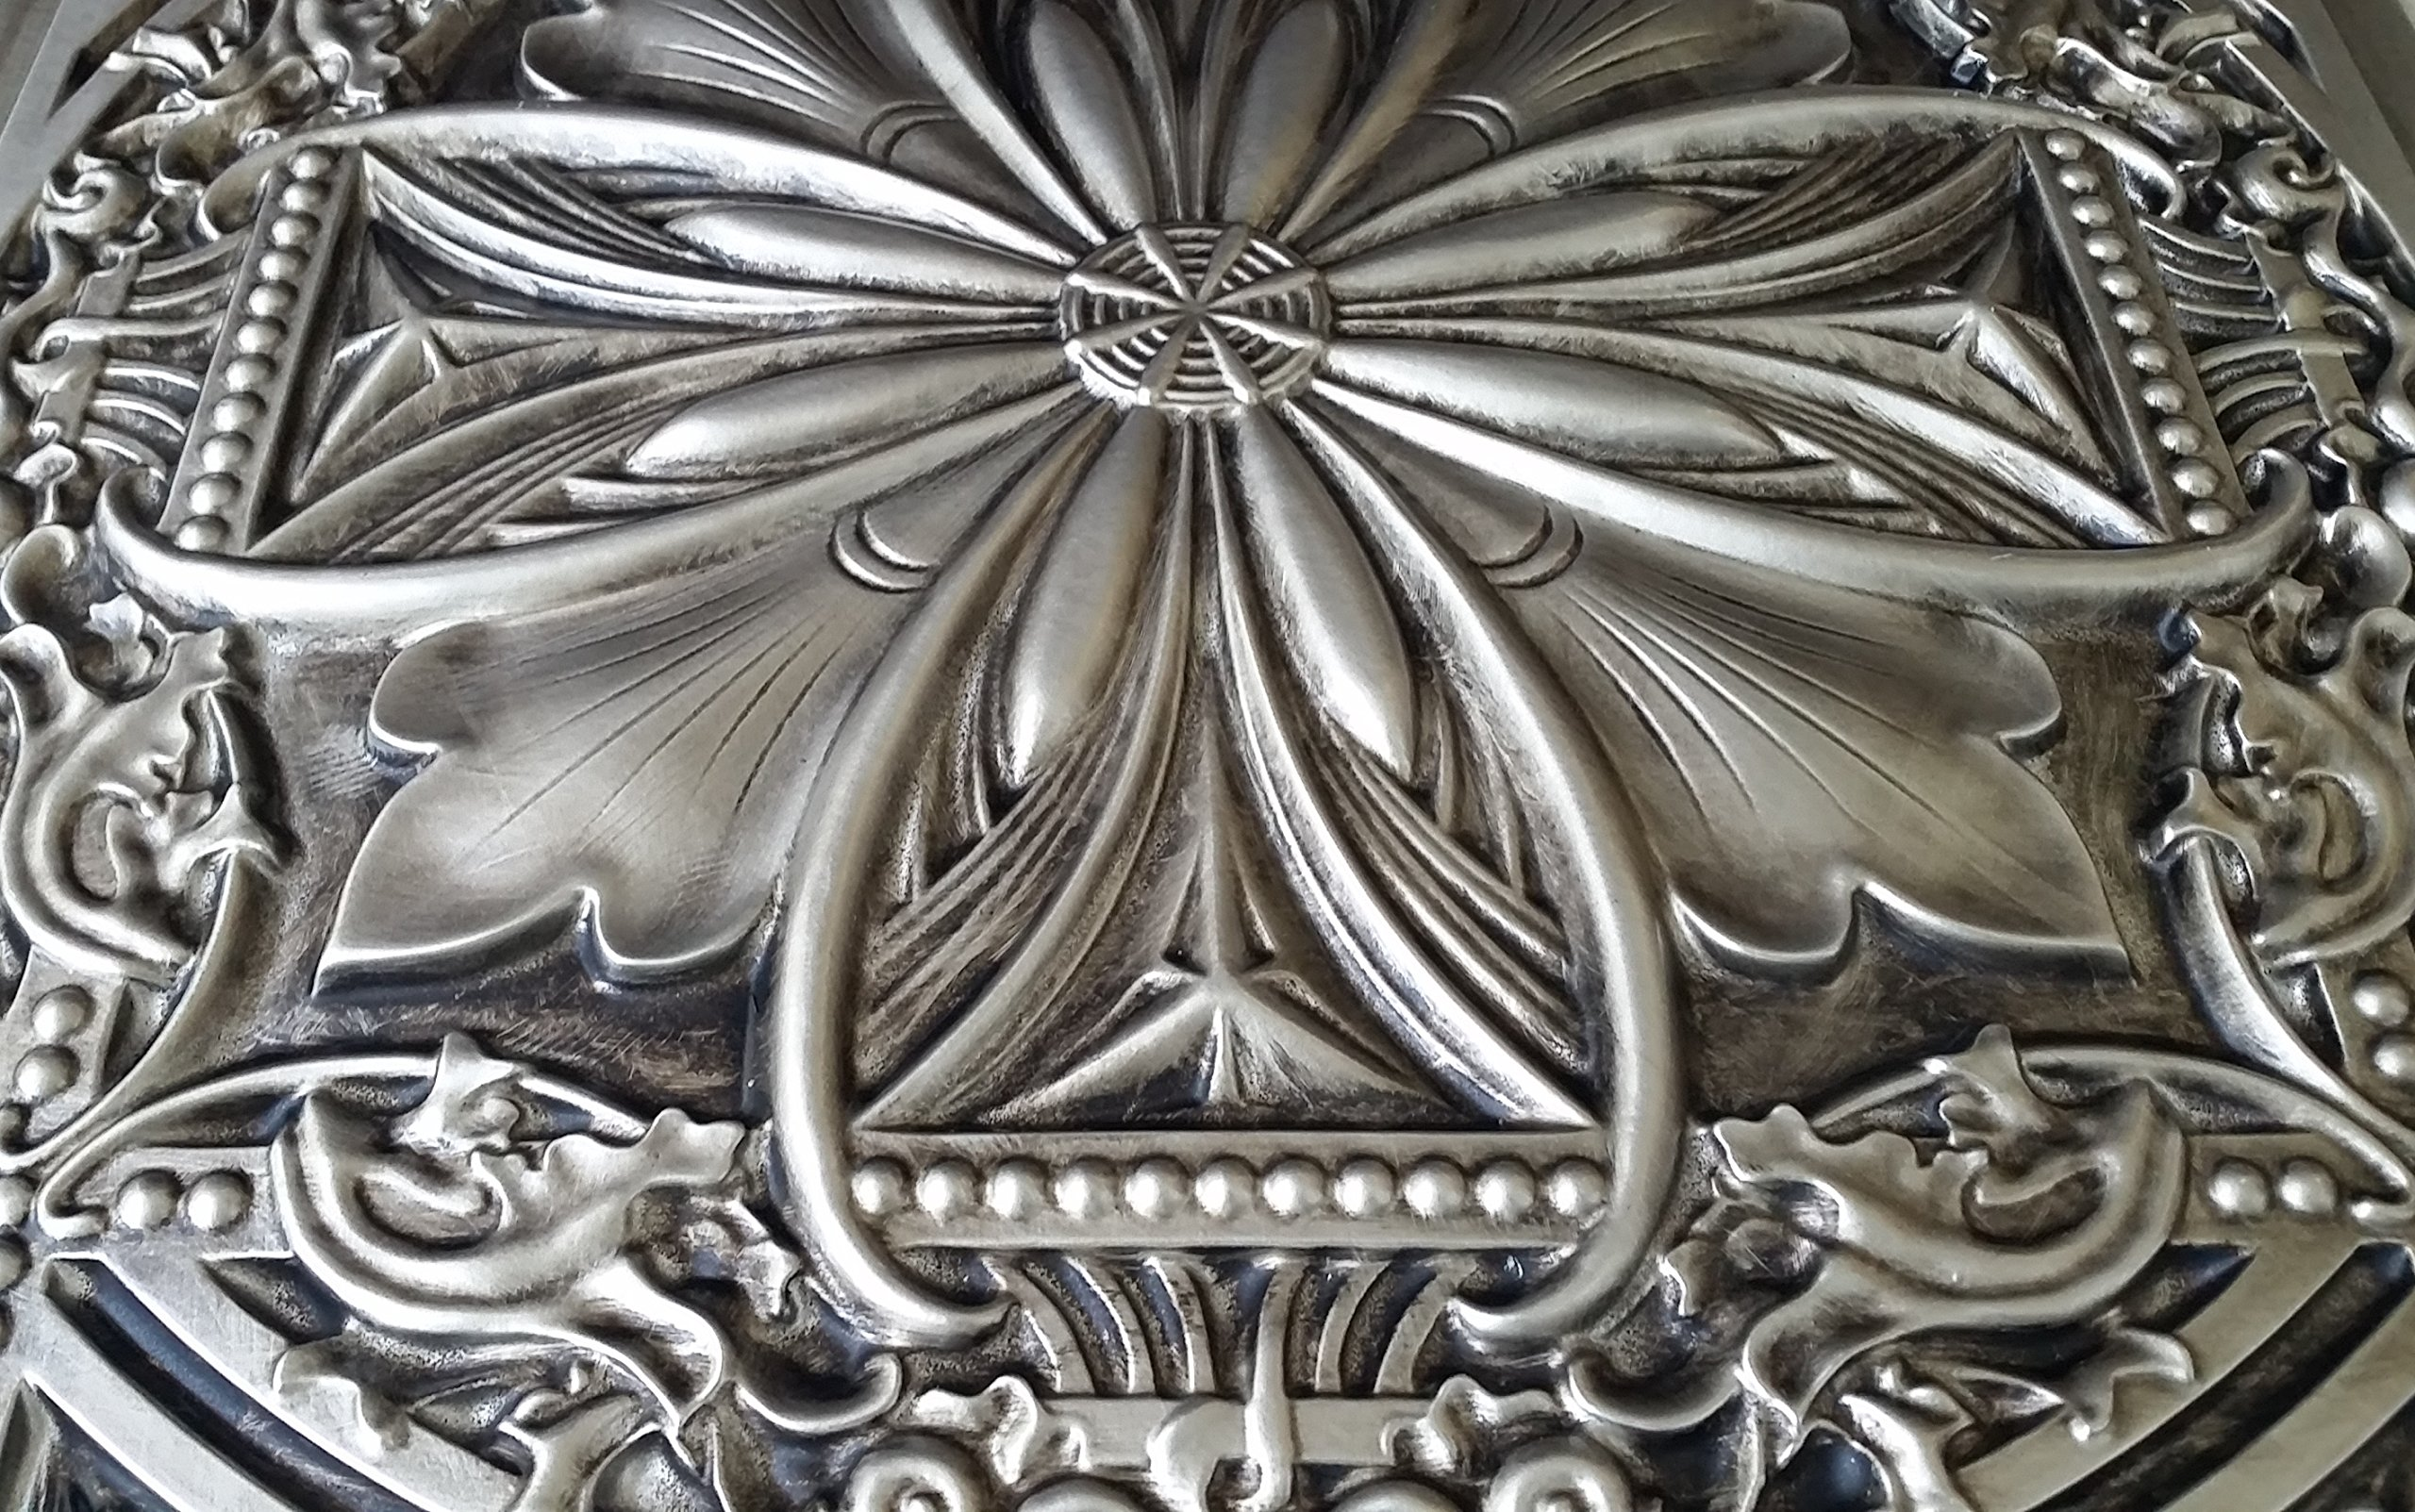 TalissaDecor Faux Tin Glue up/Drop in Ceiling Tile TD10 Aged Silver Pack of 10 2'X2' Tiles (~ 40 sq.ft). Easy to Install PVC Panels. Gorgeous Antique Vintage Look Ceiling. Great for DIY Backdrop. by TalissaDecor (Image #2)